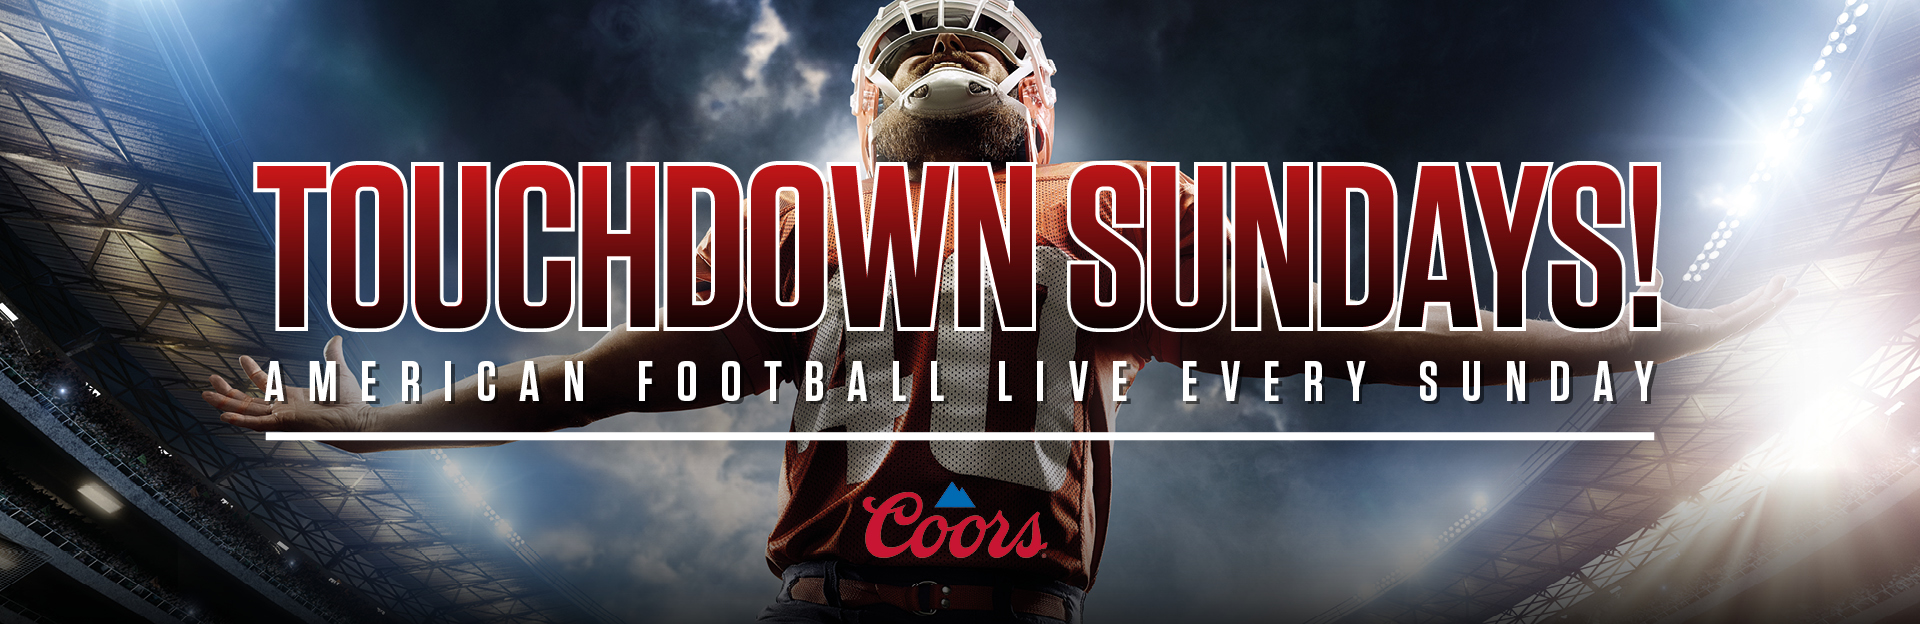 Watch NFL at The Piccadilly Tavern